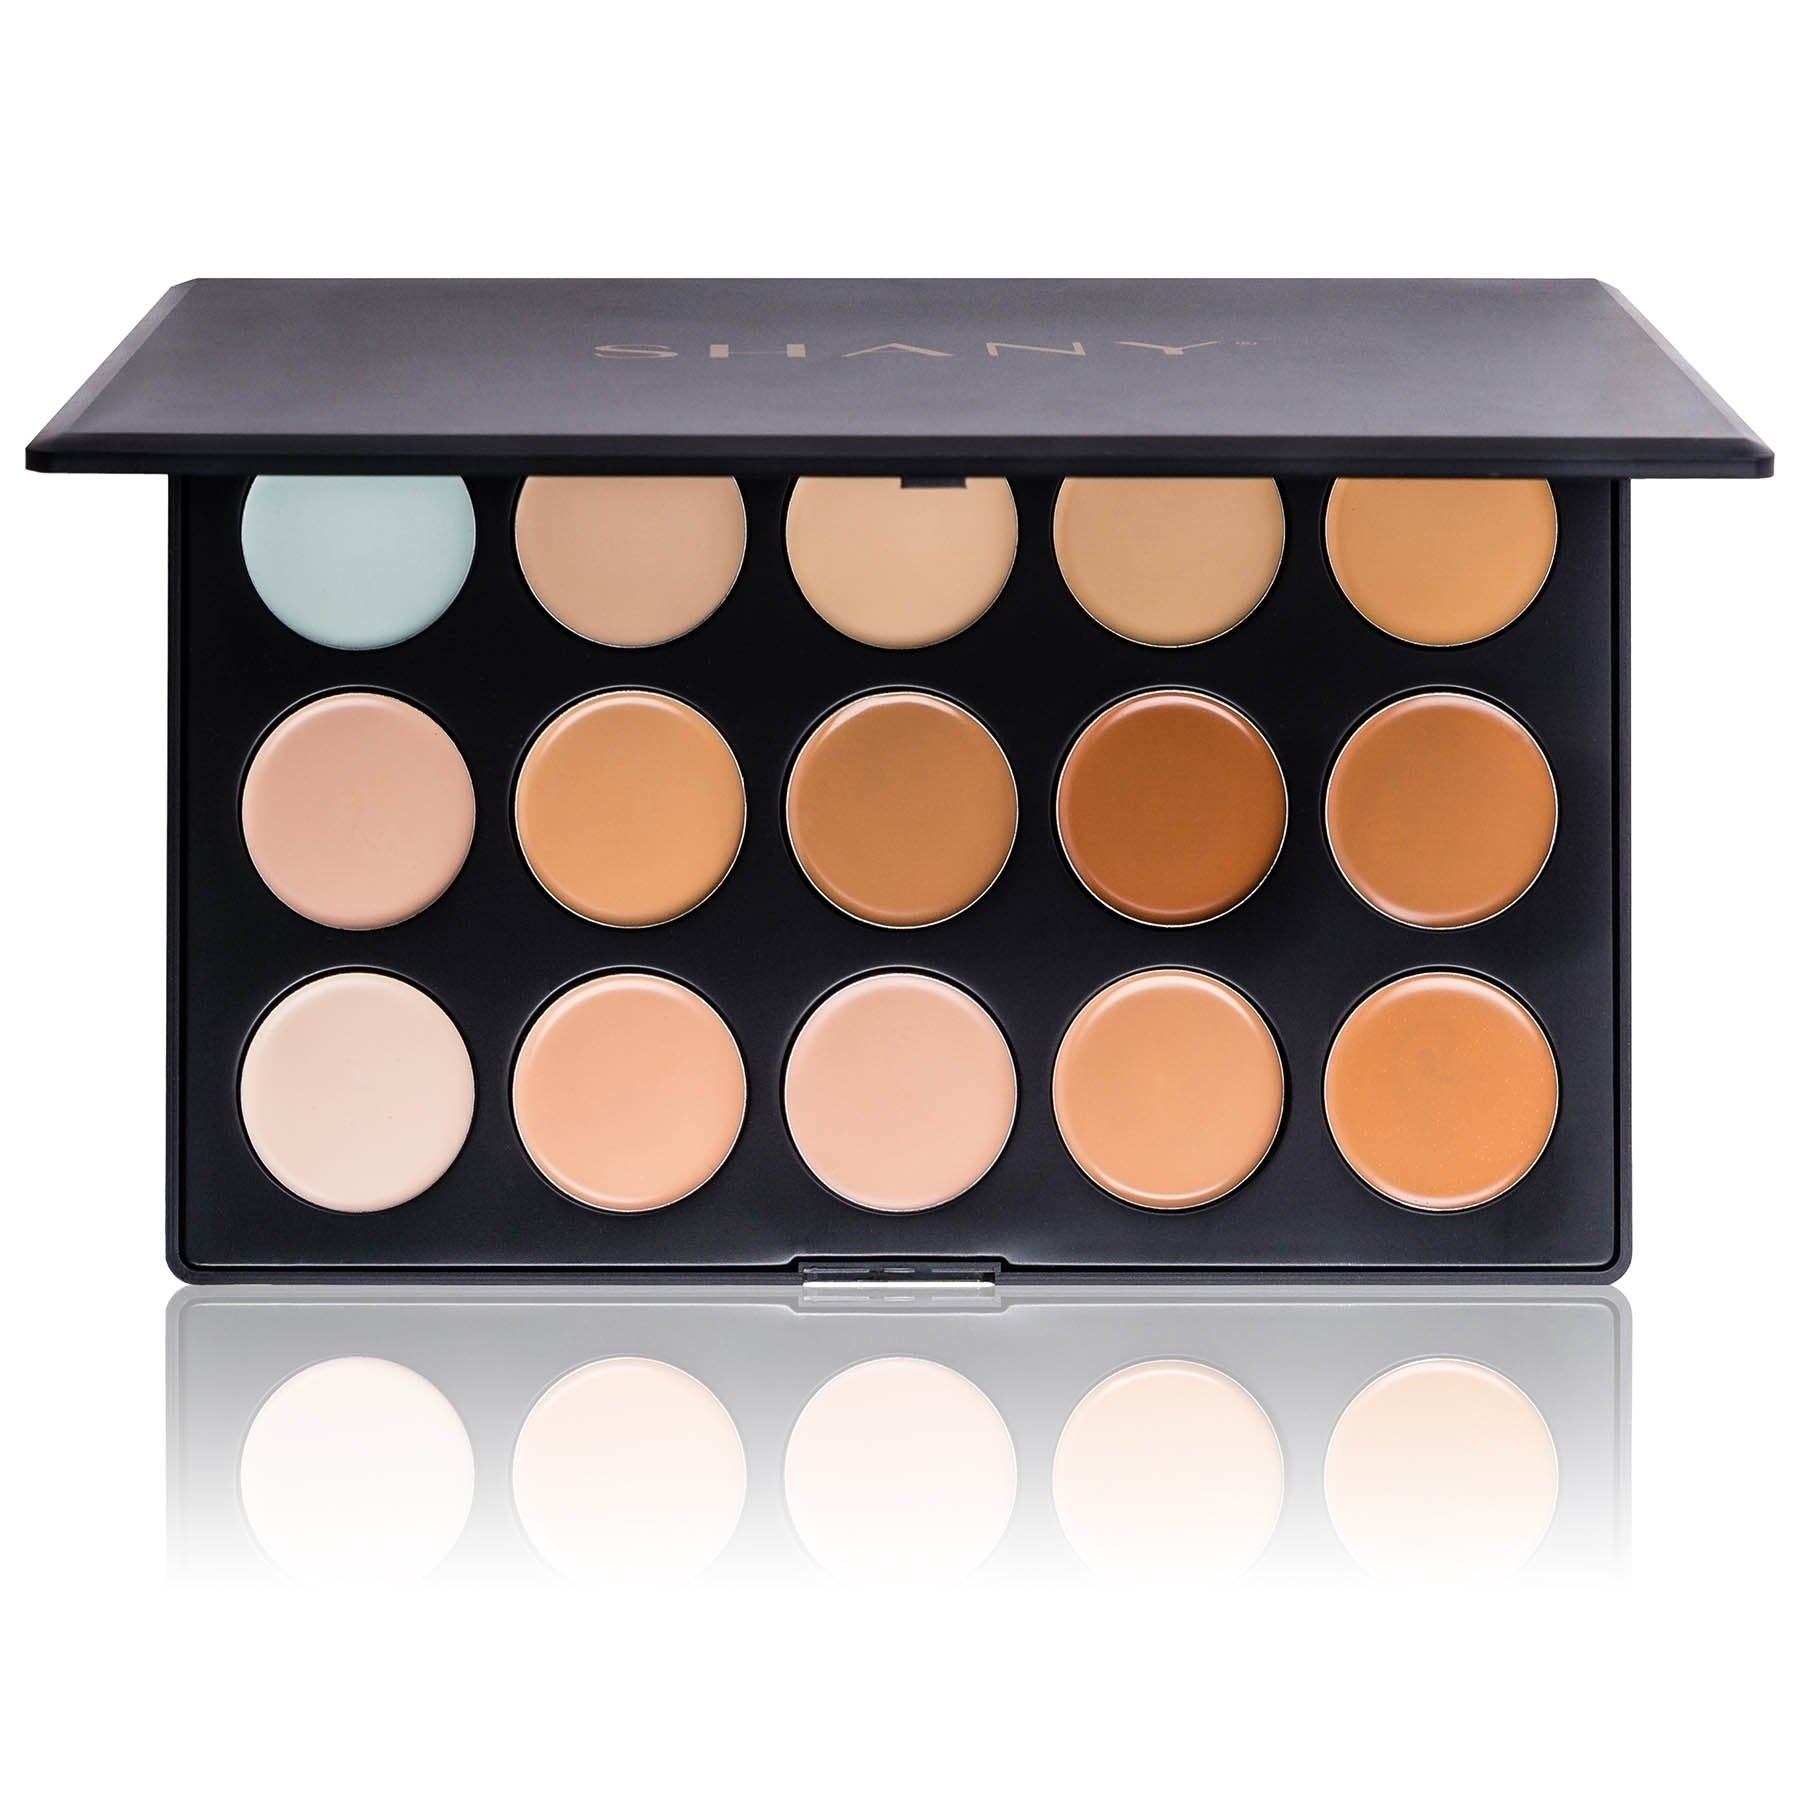 SHANY Cosmetics Shany Cream Foundation and Camouflage Concealer Palette at Sears.com